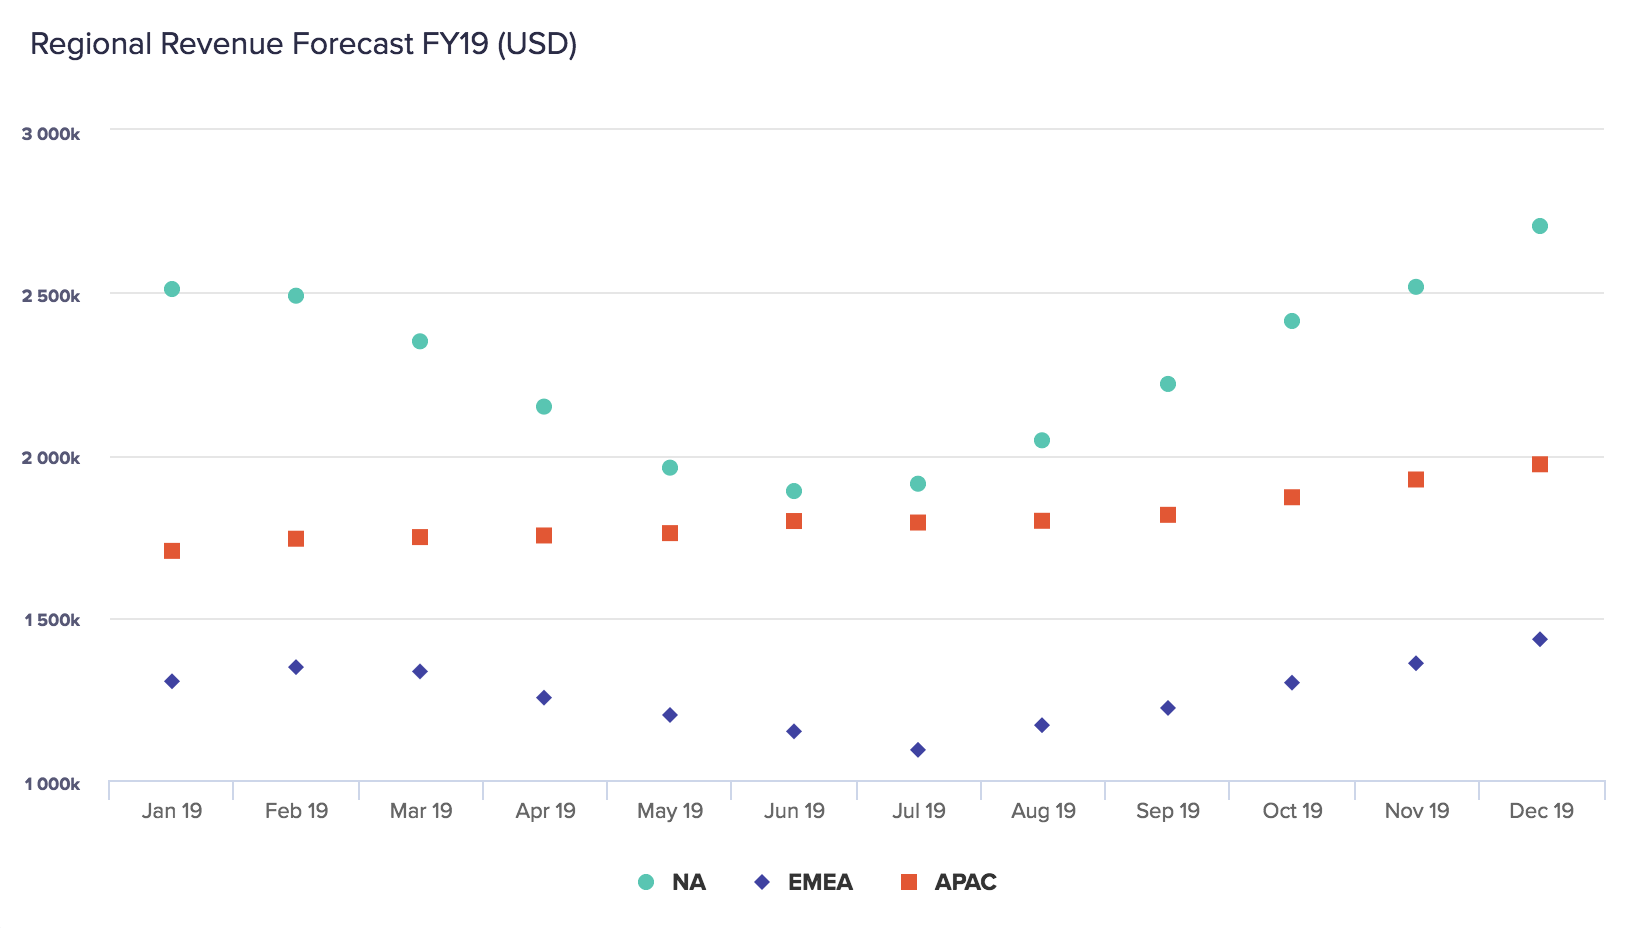 An example of a dot chart, showing a forecast of revenue for FY19 for NA, EMEA, and APAC regions.